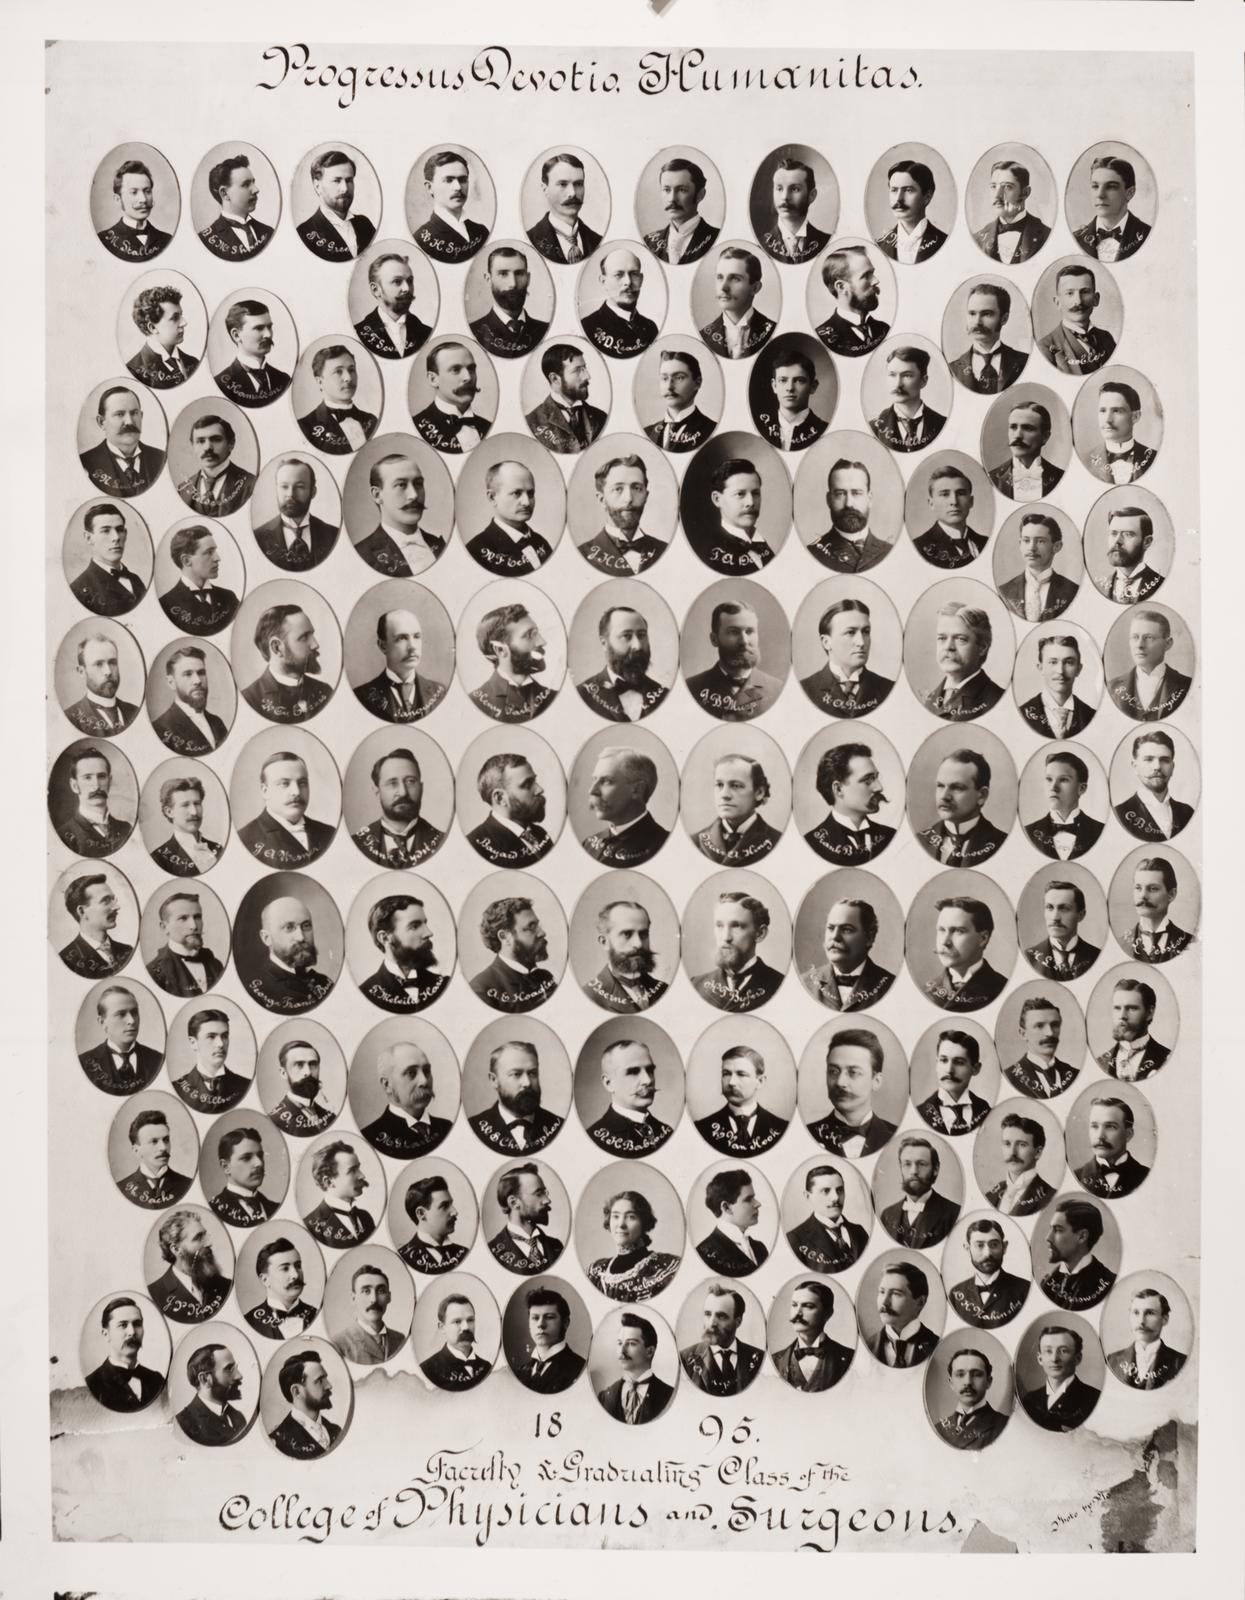 1895 graduating class, University of Illinois College of Medicine